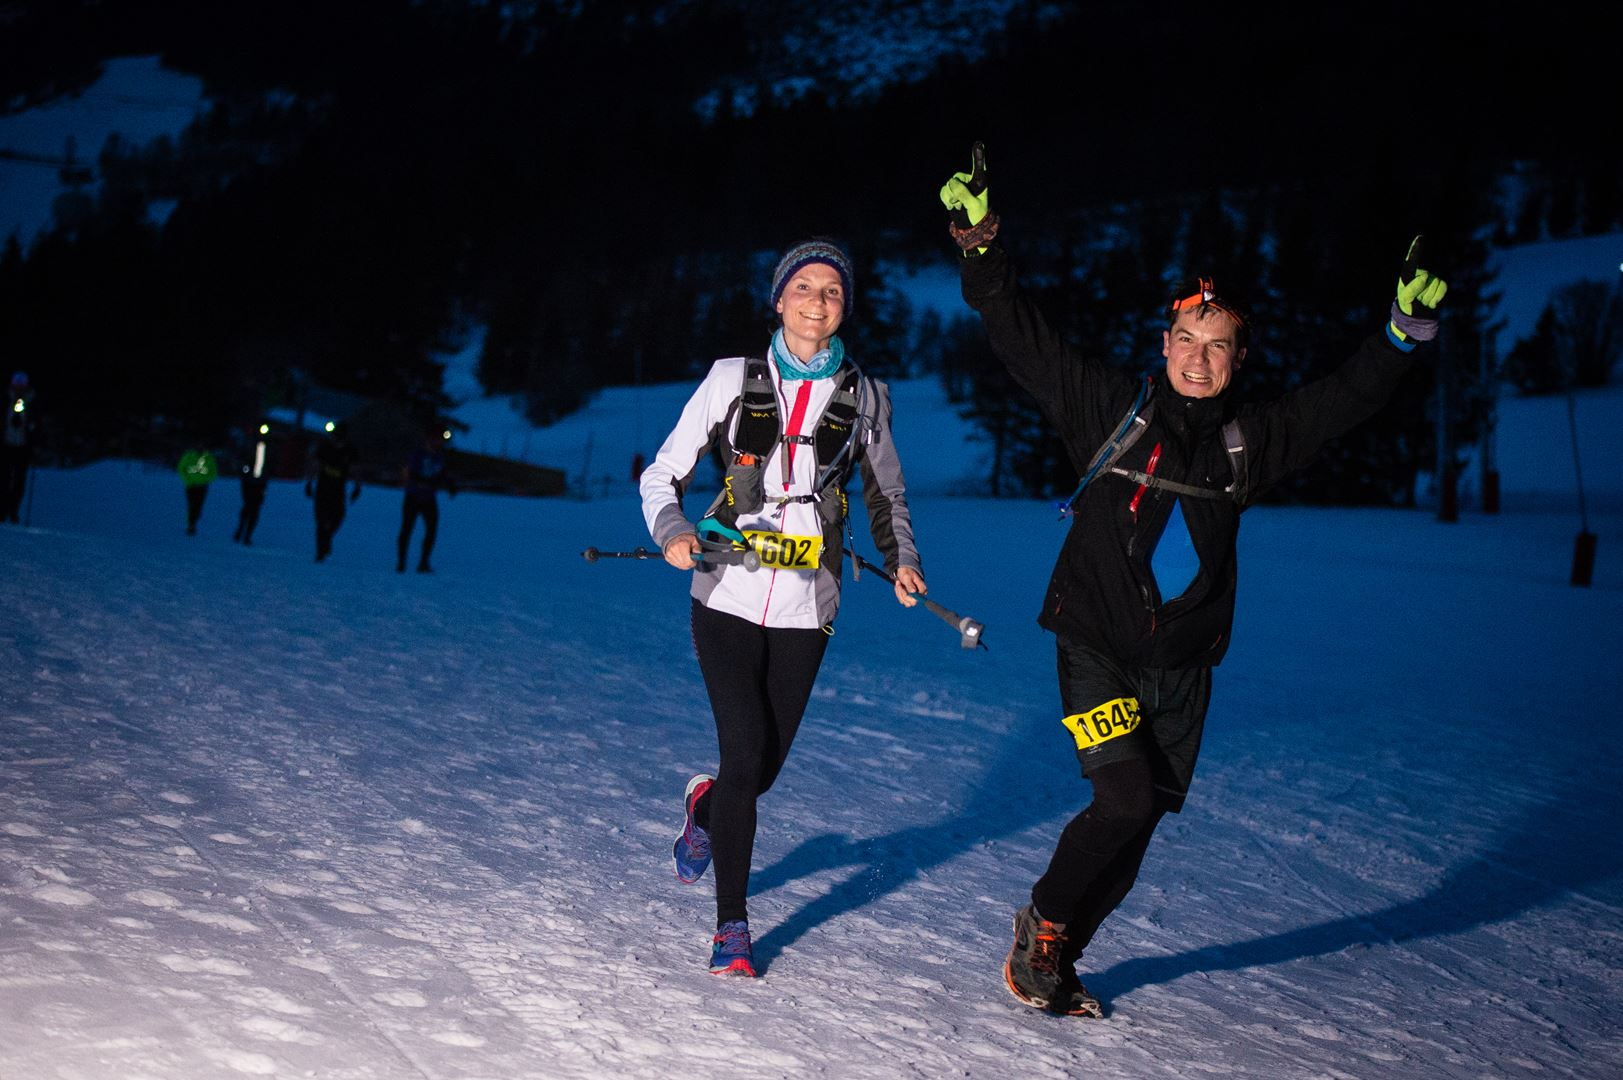 winter sibo trail 2020 HD aufildeslumieres 0012 - RESULTATS ET PHOTOS DU WINTER SIBOTRAIL LANS EN VERCORS (07/03/2020)